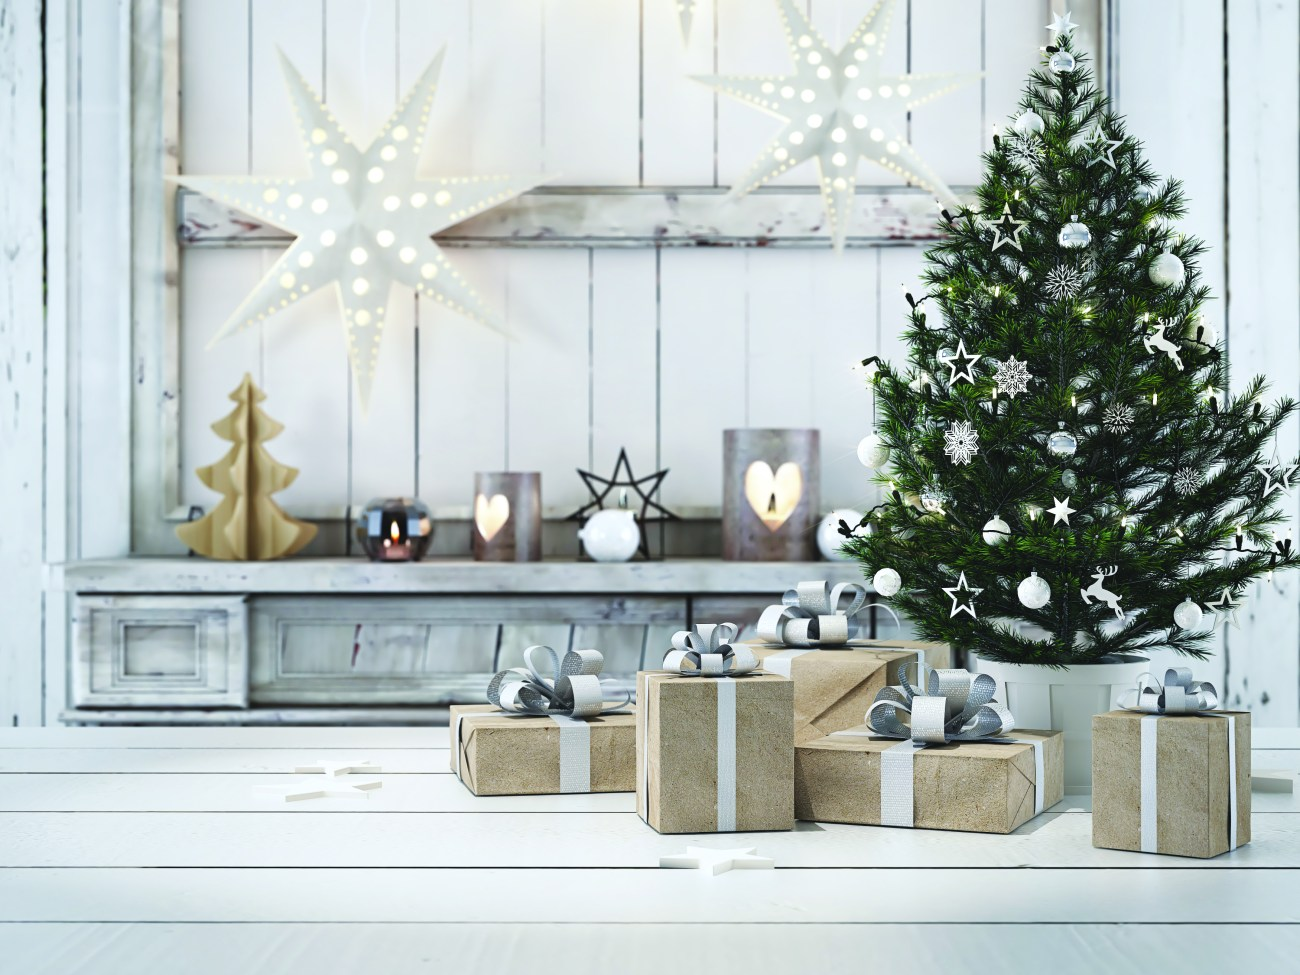 beautiful gift with Christmas ornaments. 3d rendering